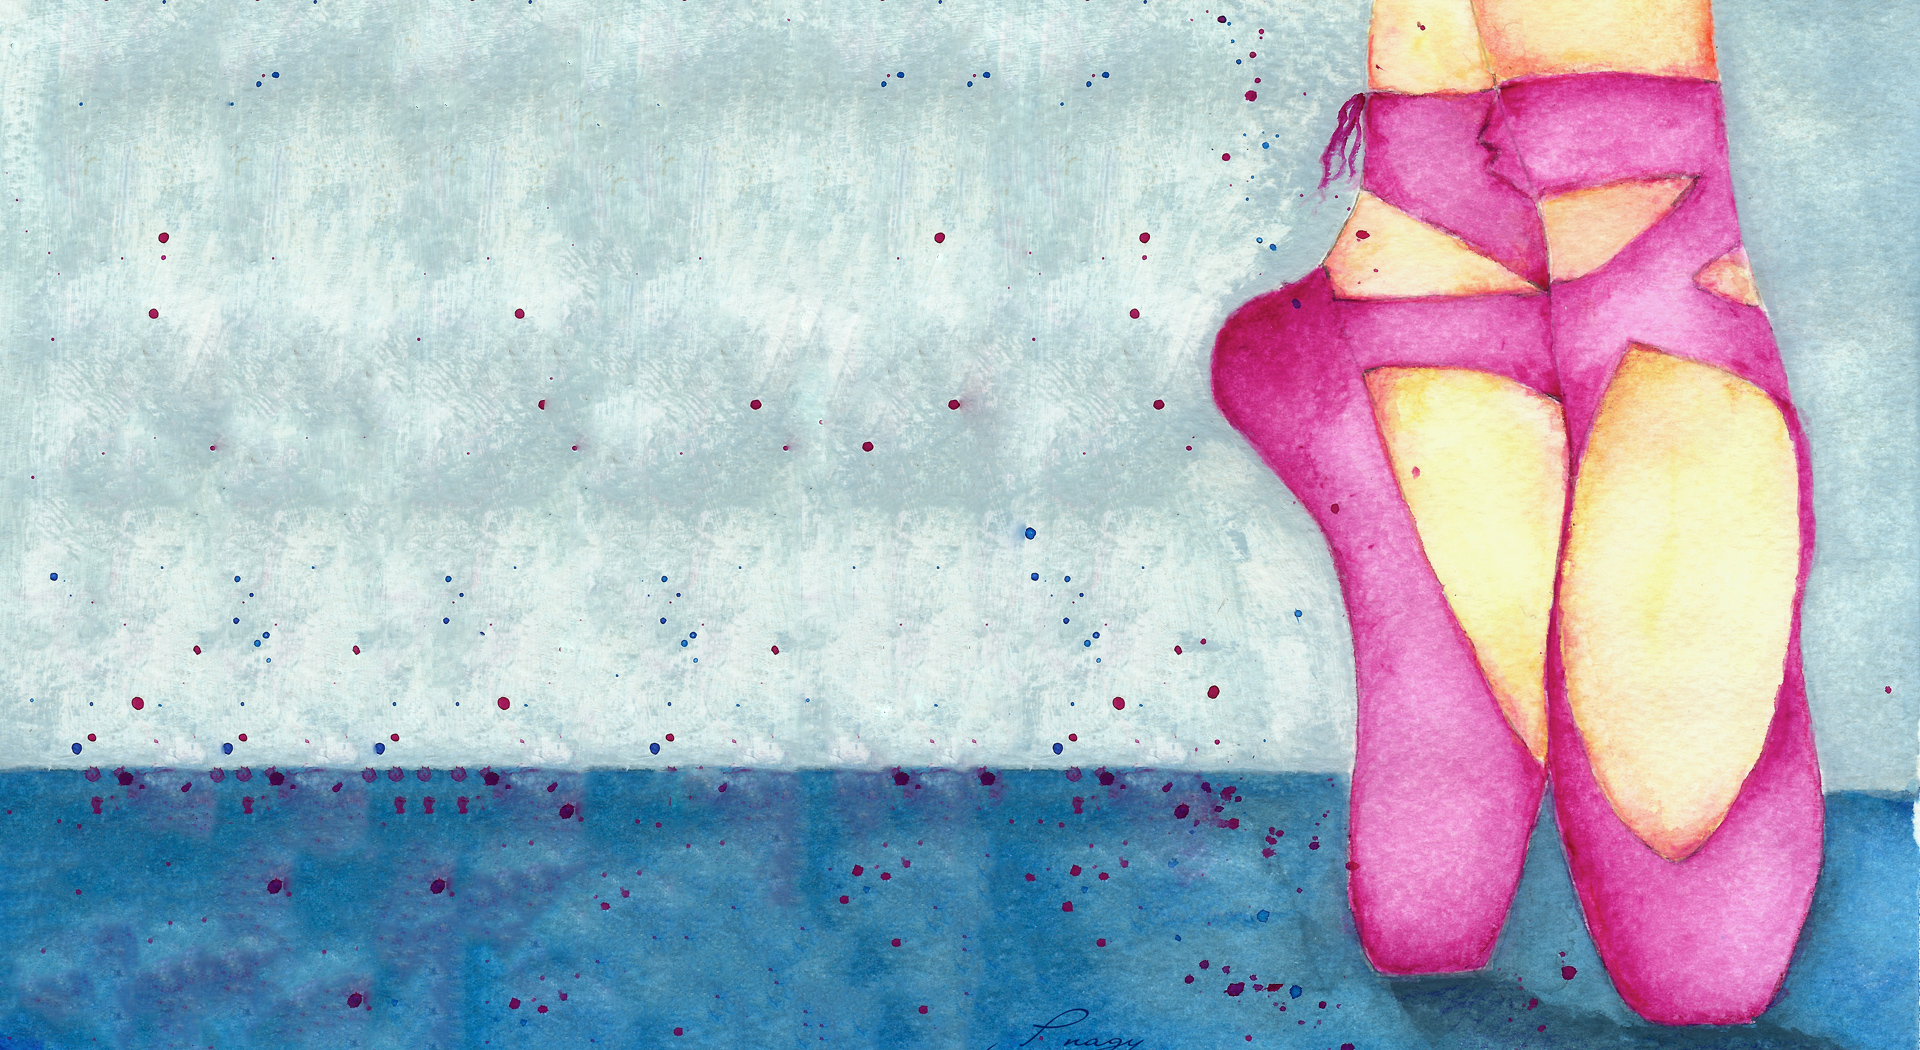 Ballet Shoes - A New year's Message